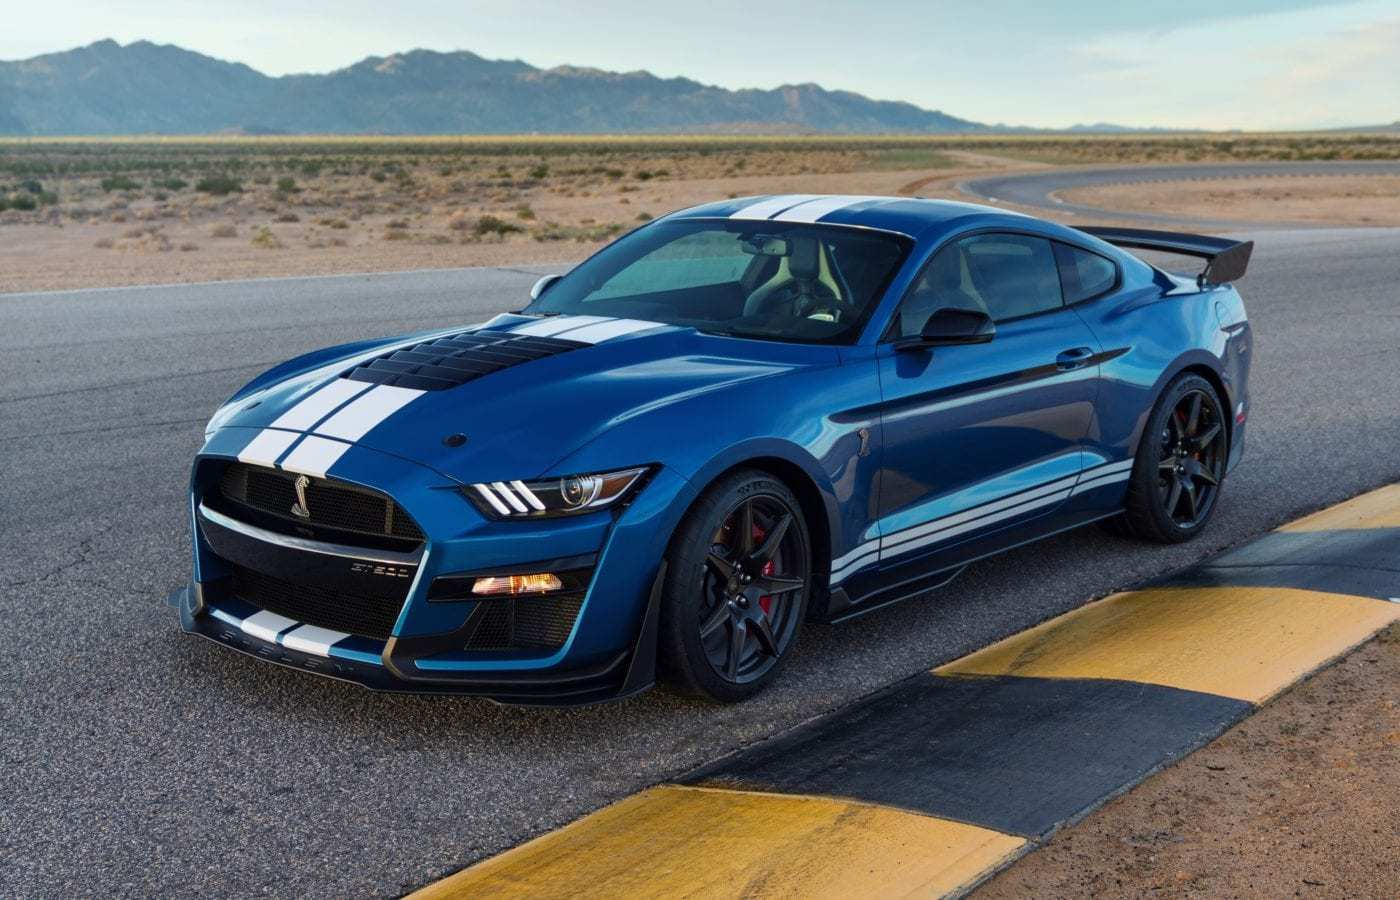 41 Best 2020 Ford Mustang Gt500 Research New